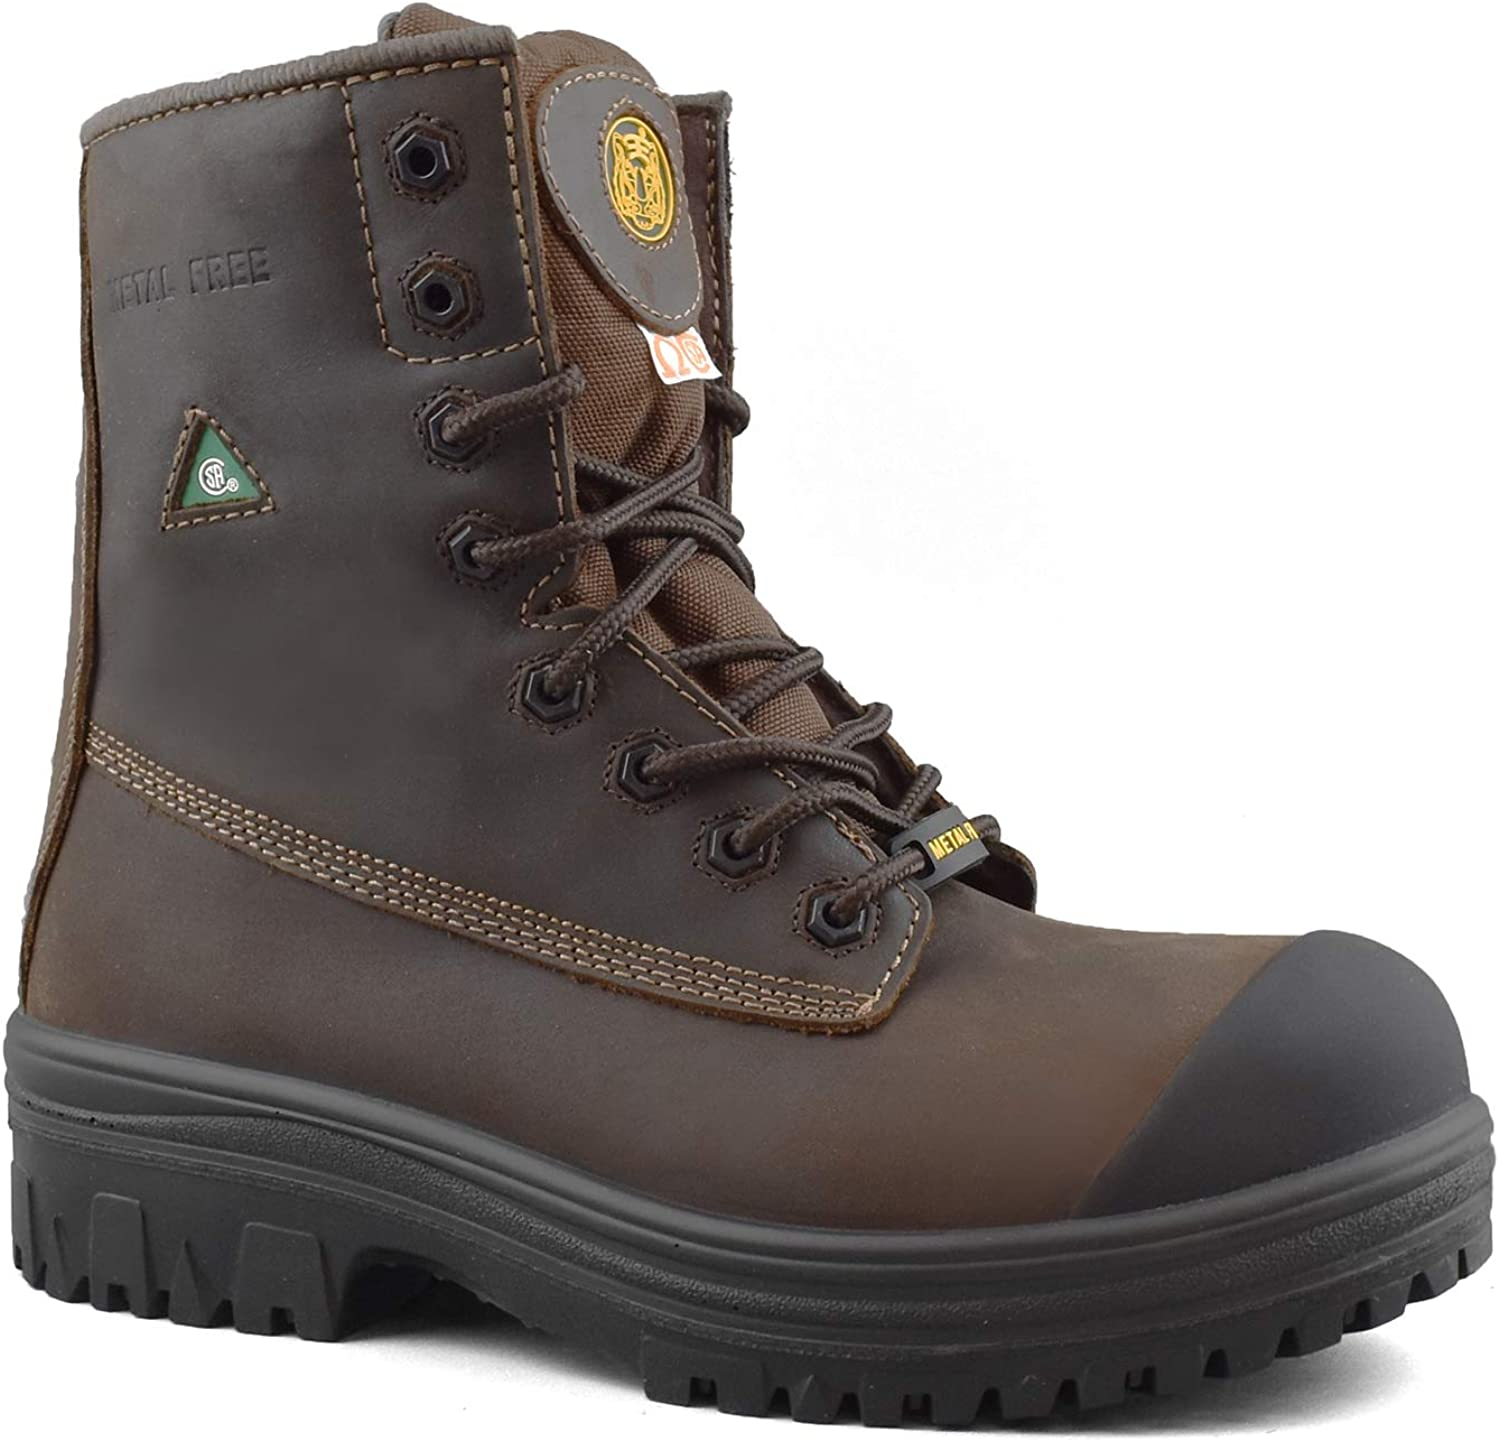 Tiger Safety CSA Men's Leather Work Safety Boots Metal Free with Rubber Outsole - 6228